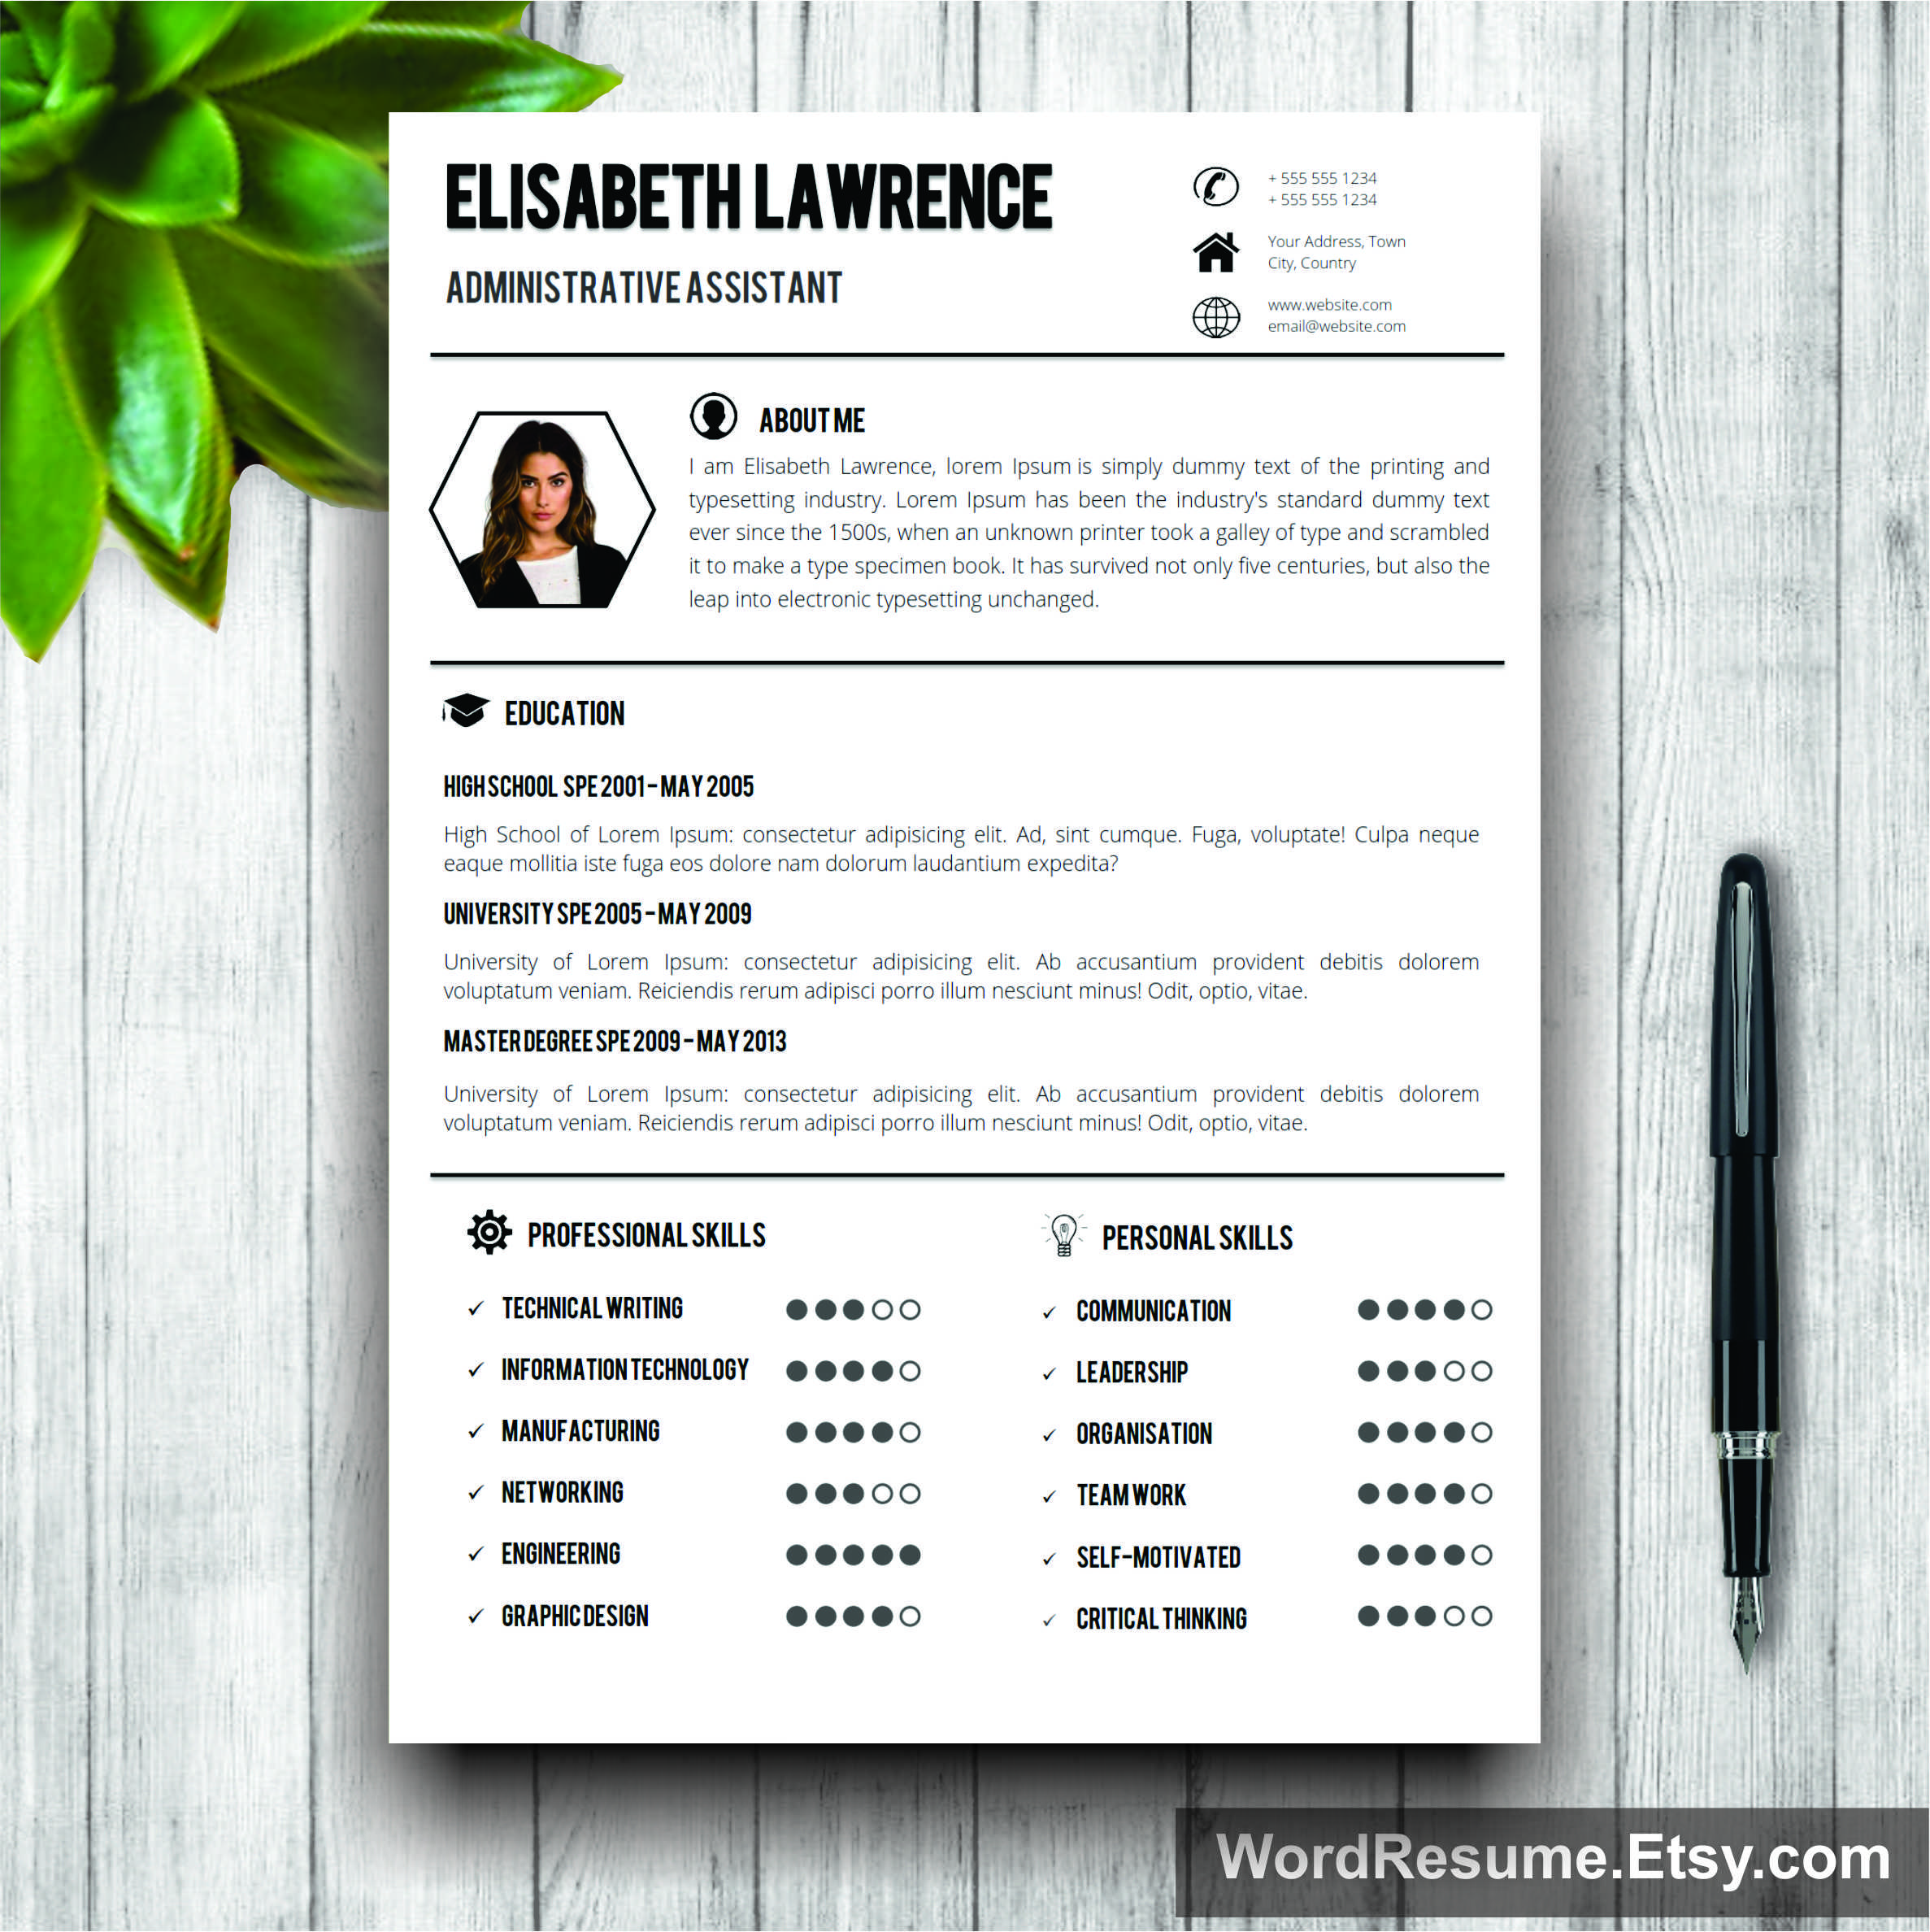 Word Resume Template With Photo  Cover Letter  Elisabeth Lawrence